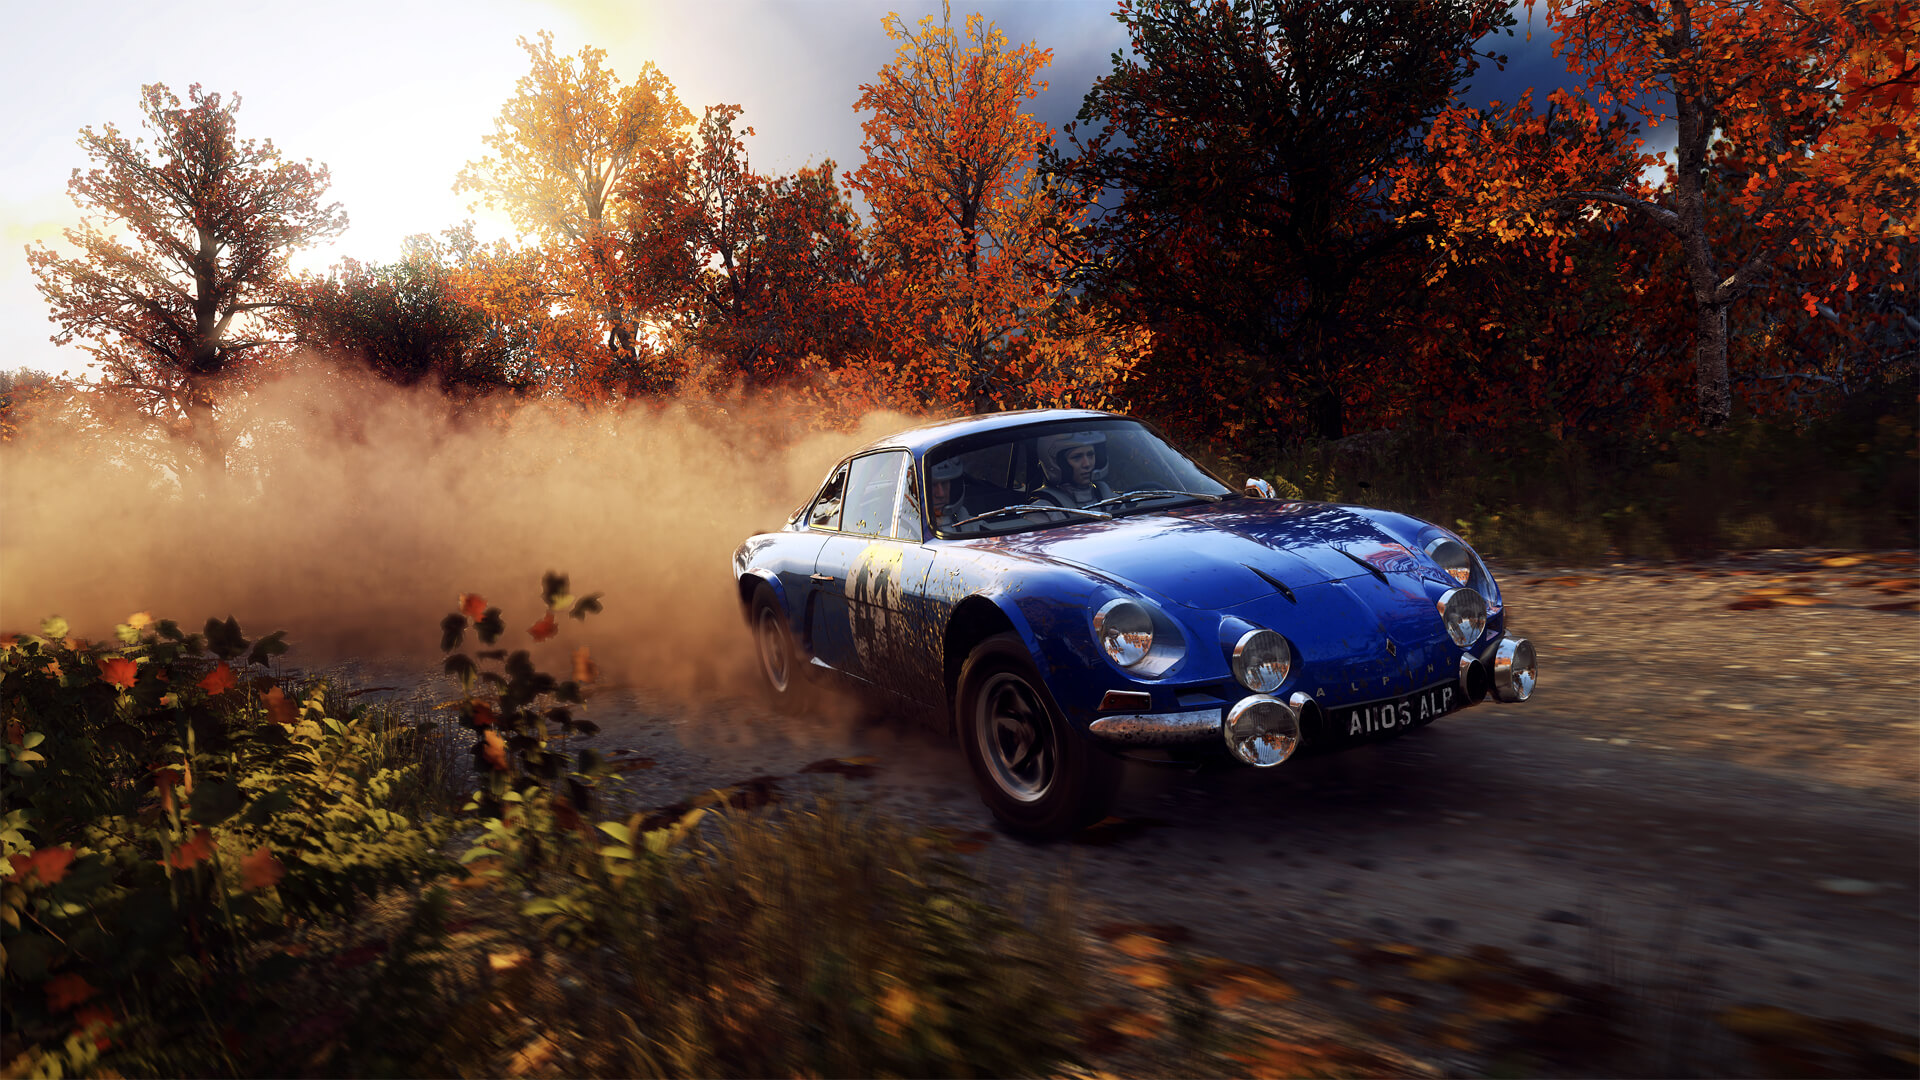 Dirt Rally Xbox One : dirt rally 2 0 shows classic rally cars through the ages fullthrottle media ~ Aude.kayakingforconservation.com Haus und Dekorationen